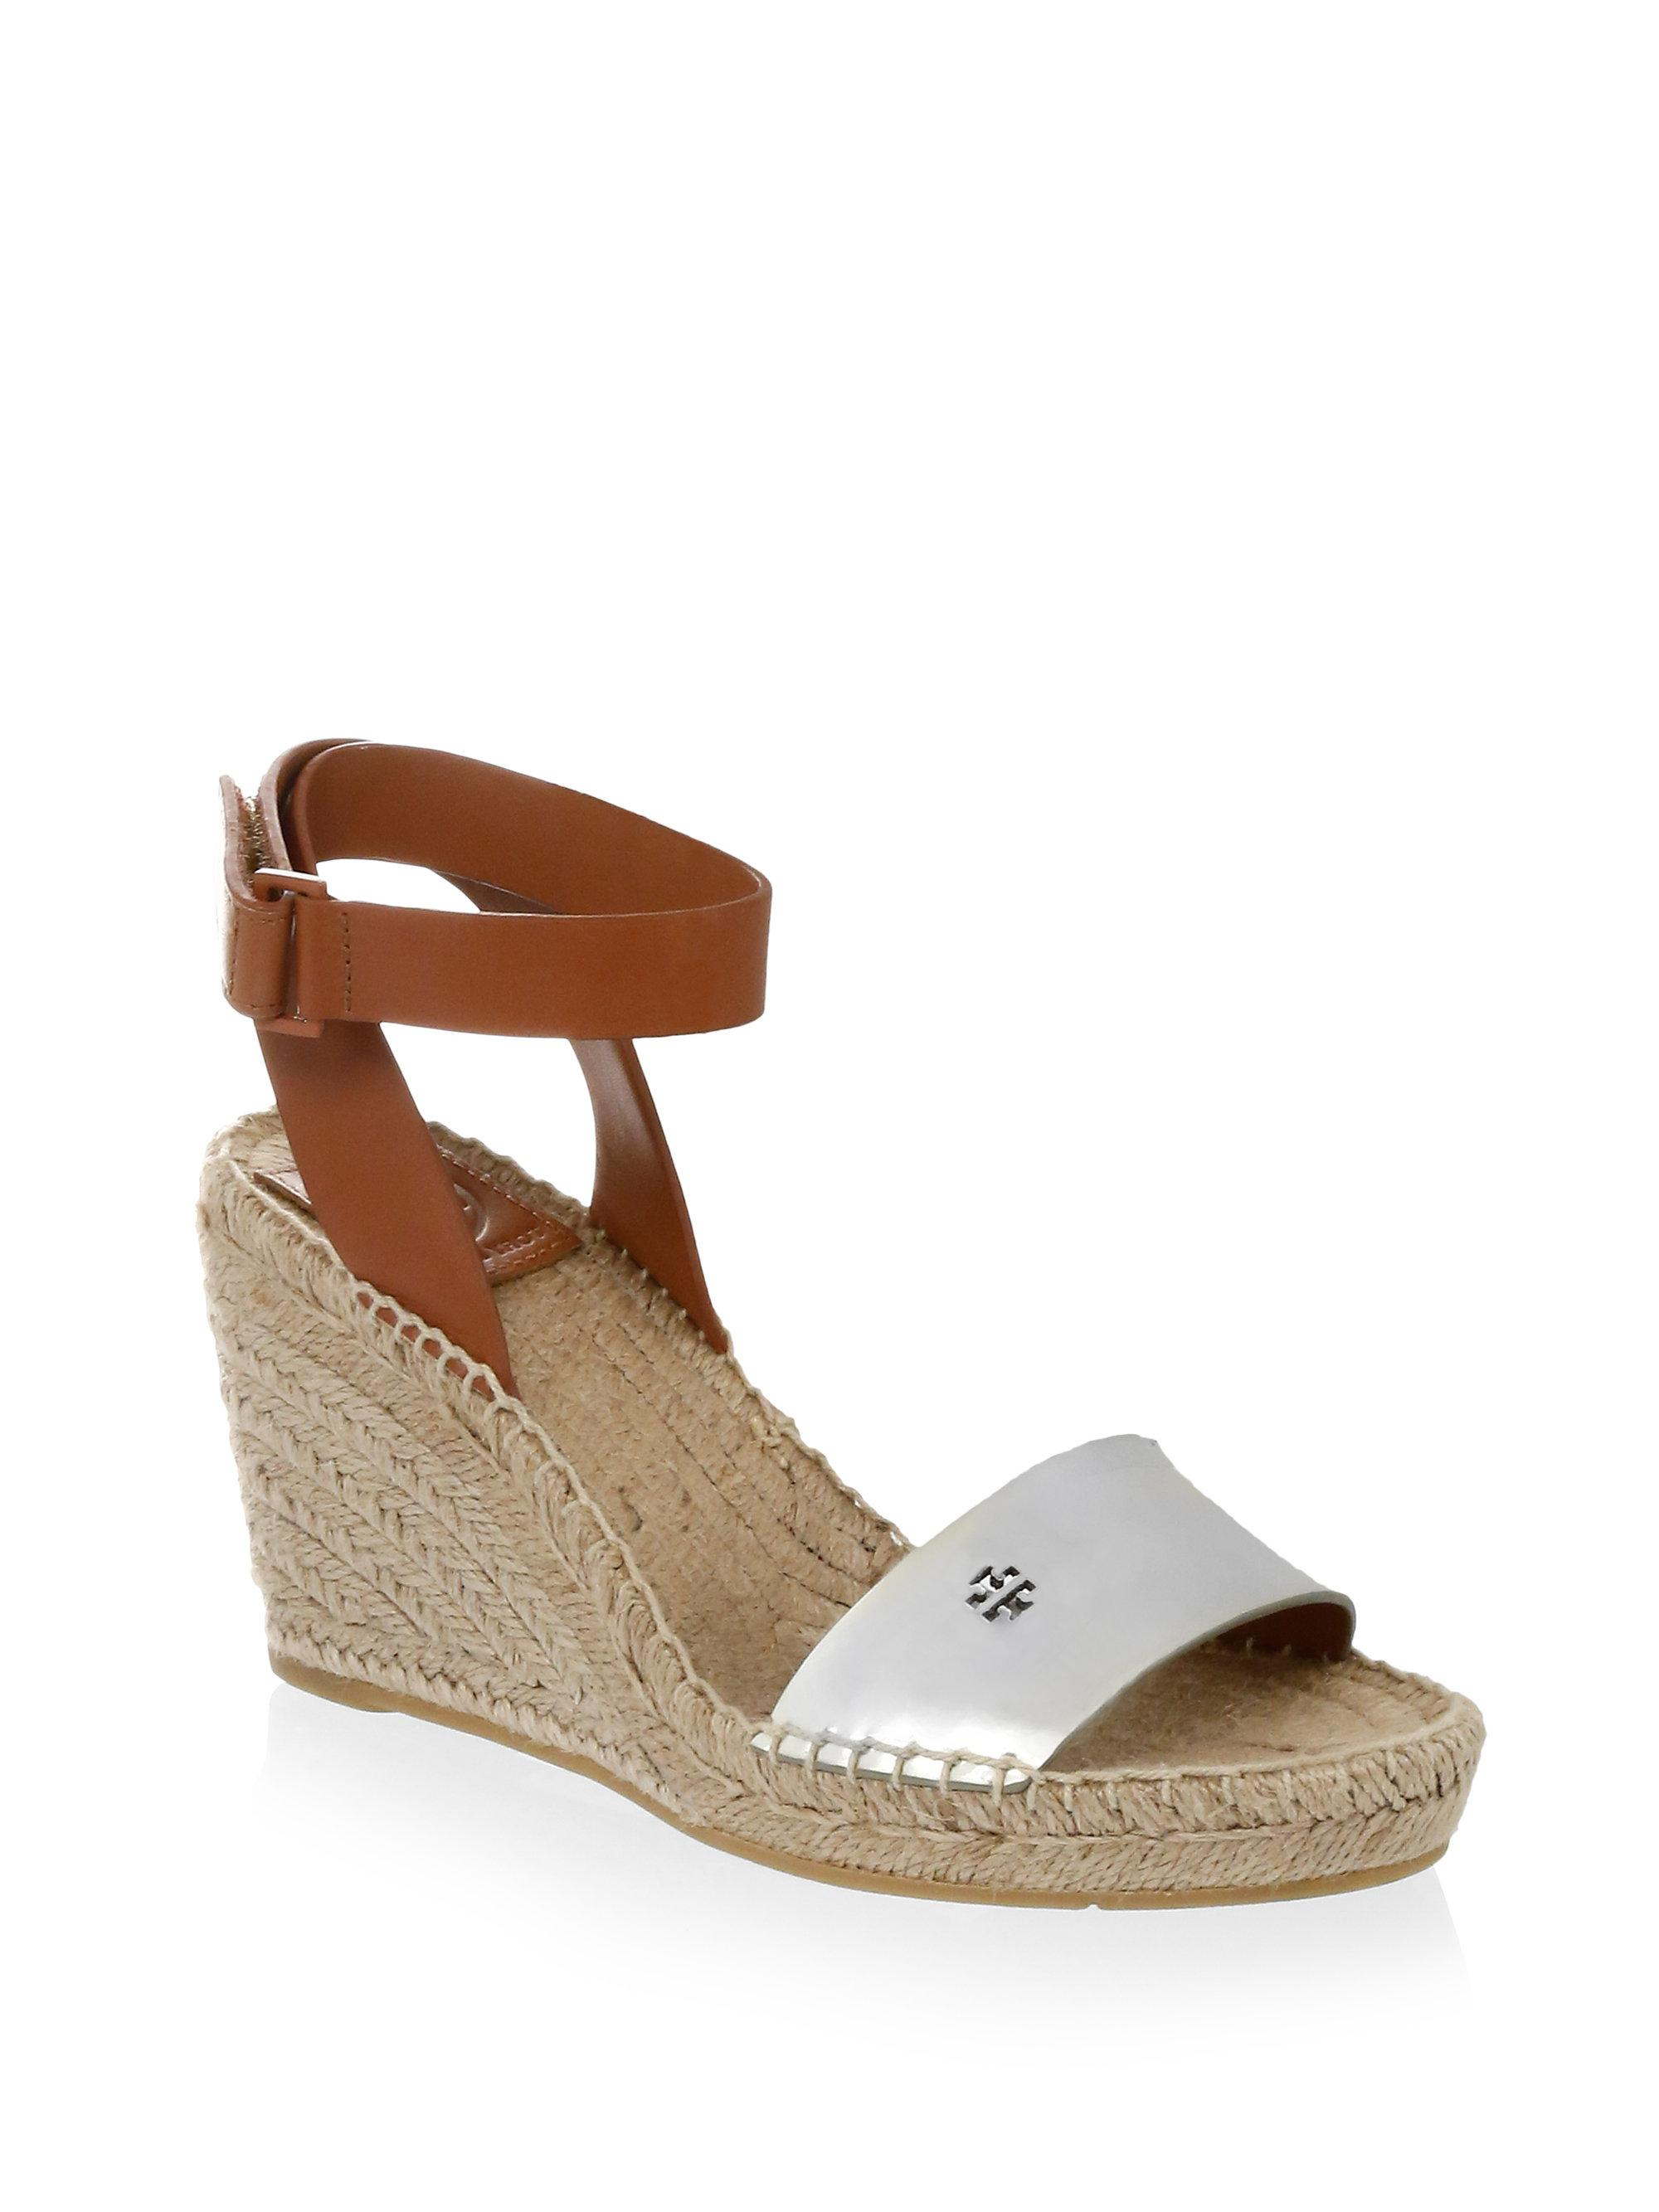 cheap free shipping BIMA WEDGE ESPADRILLE 278 discount best wholesale outlet store Locations imQ8qqMiJ